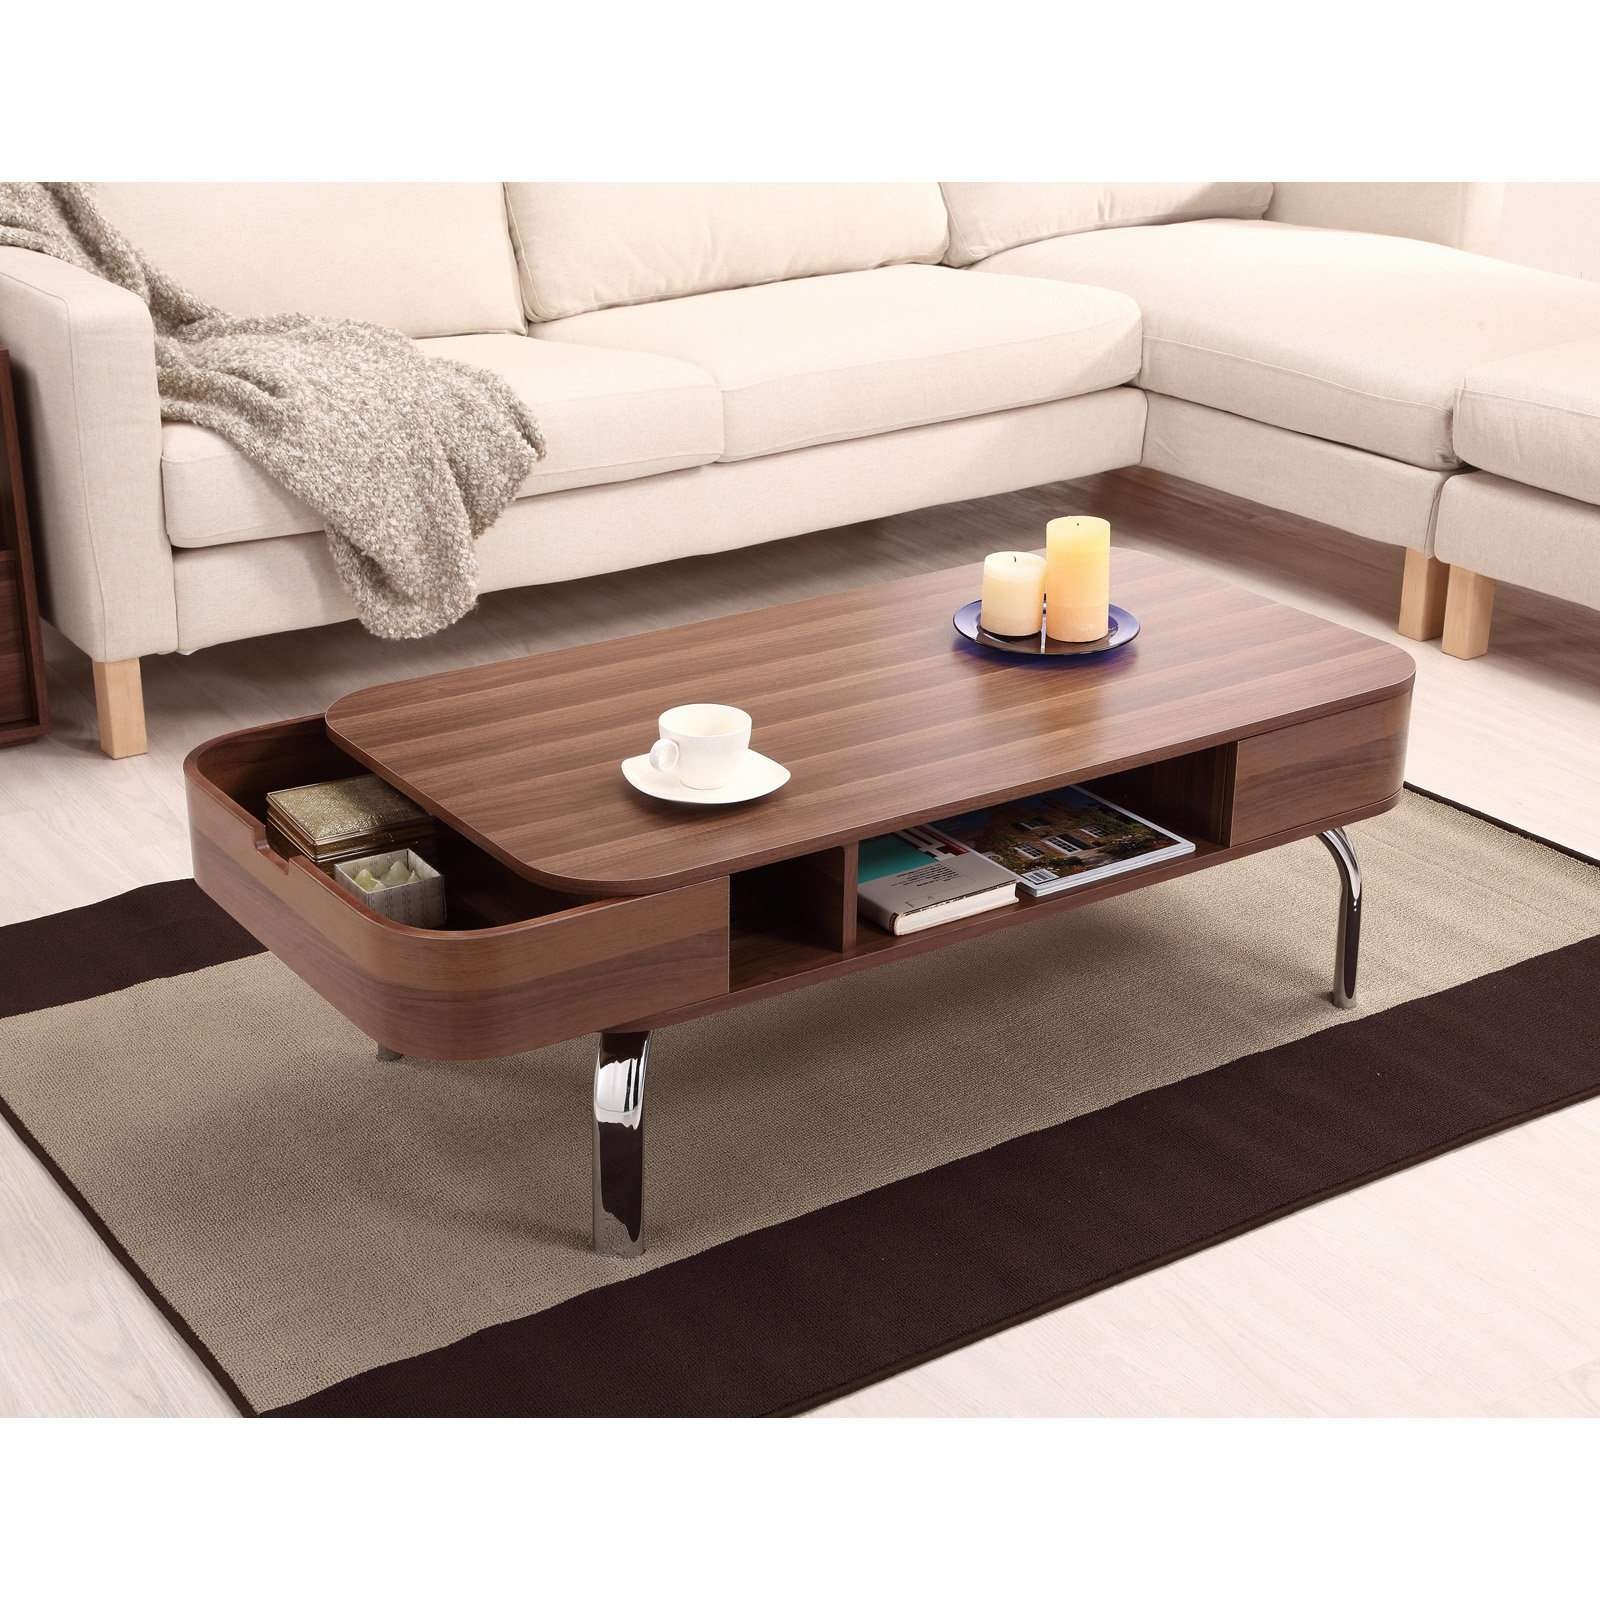 Most Current Modern Coffee Tables With Storage With Furniture Of America Lawson Modern Walnut 2 Drawer Coffee Table (View 16 of 20)